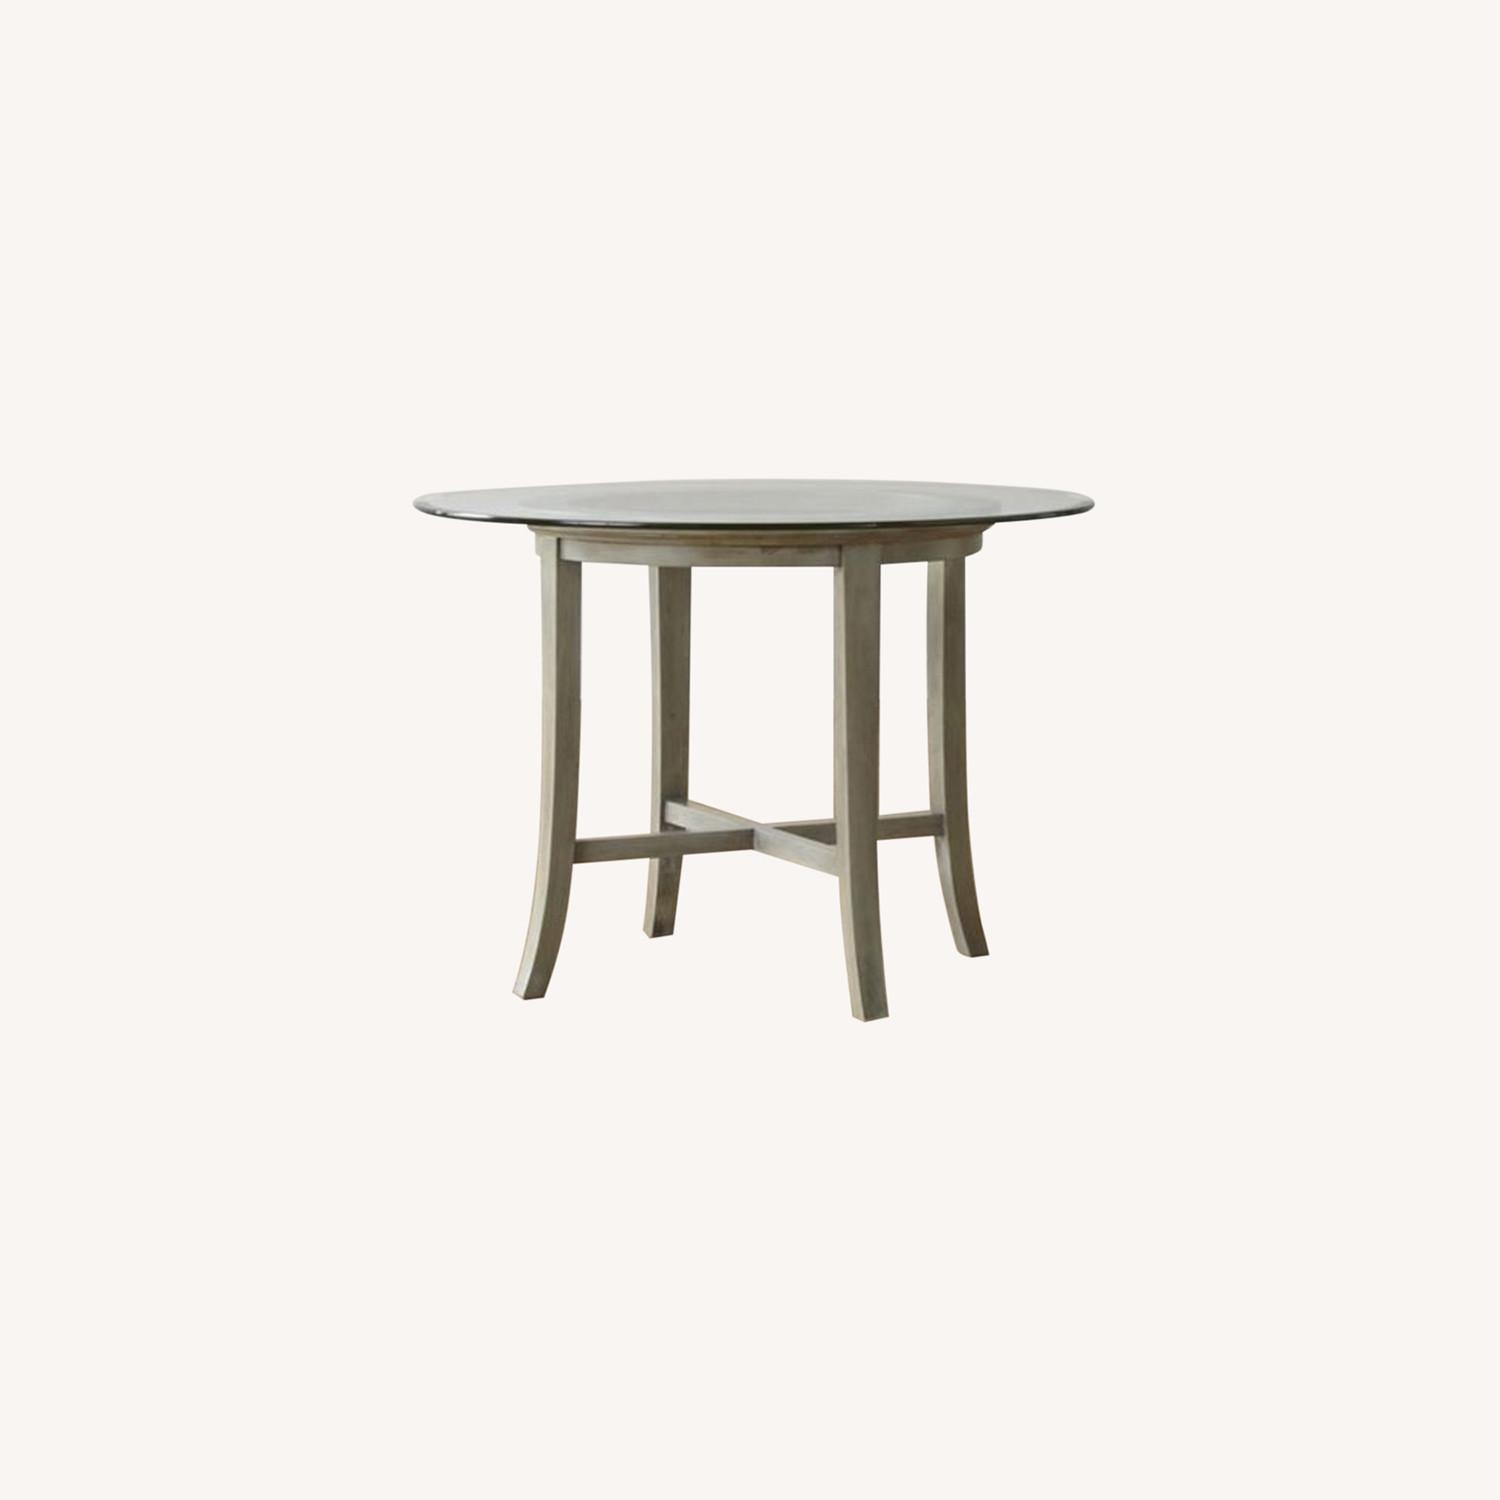 Crate and Barrel Round Glass Dining Table - image-0